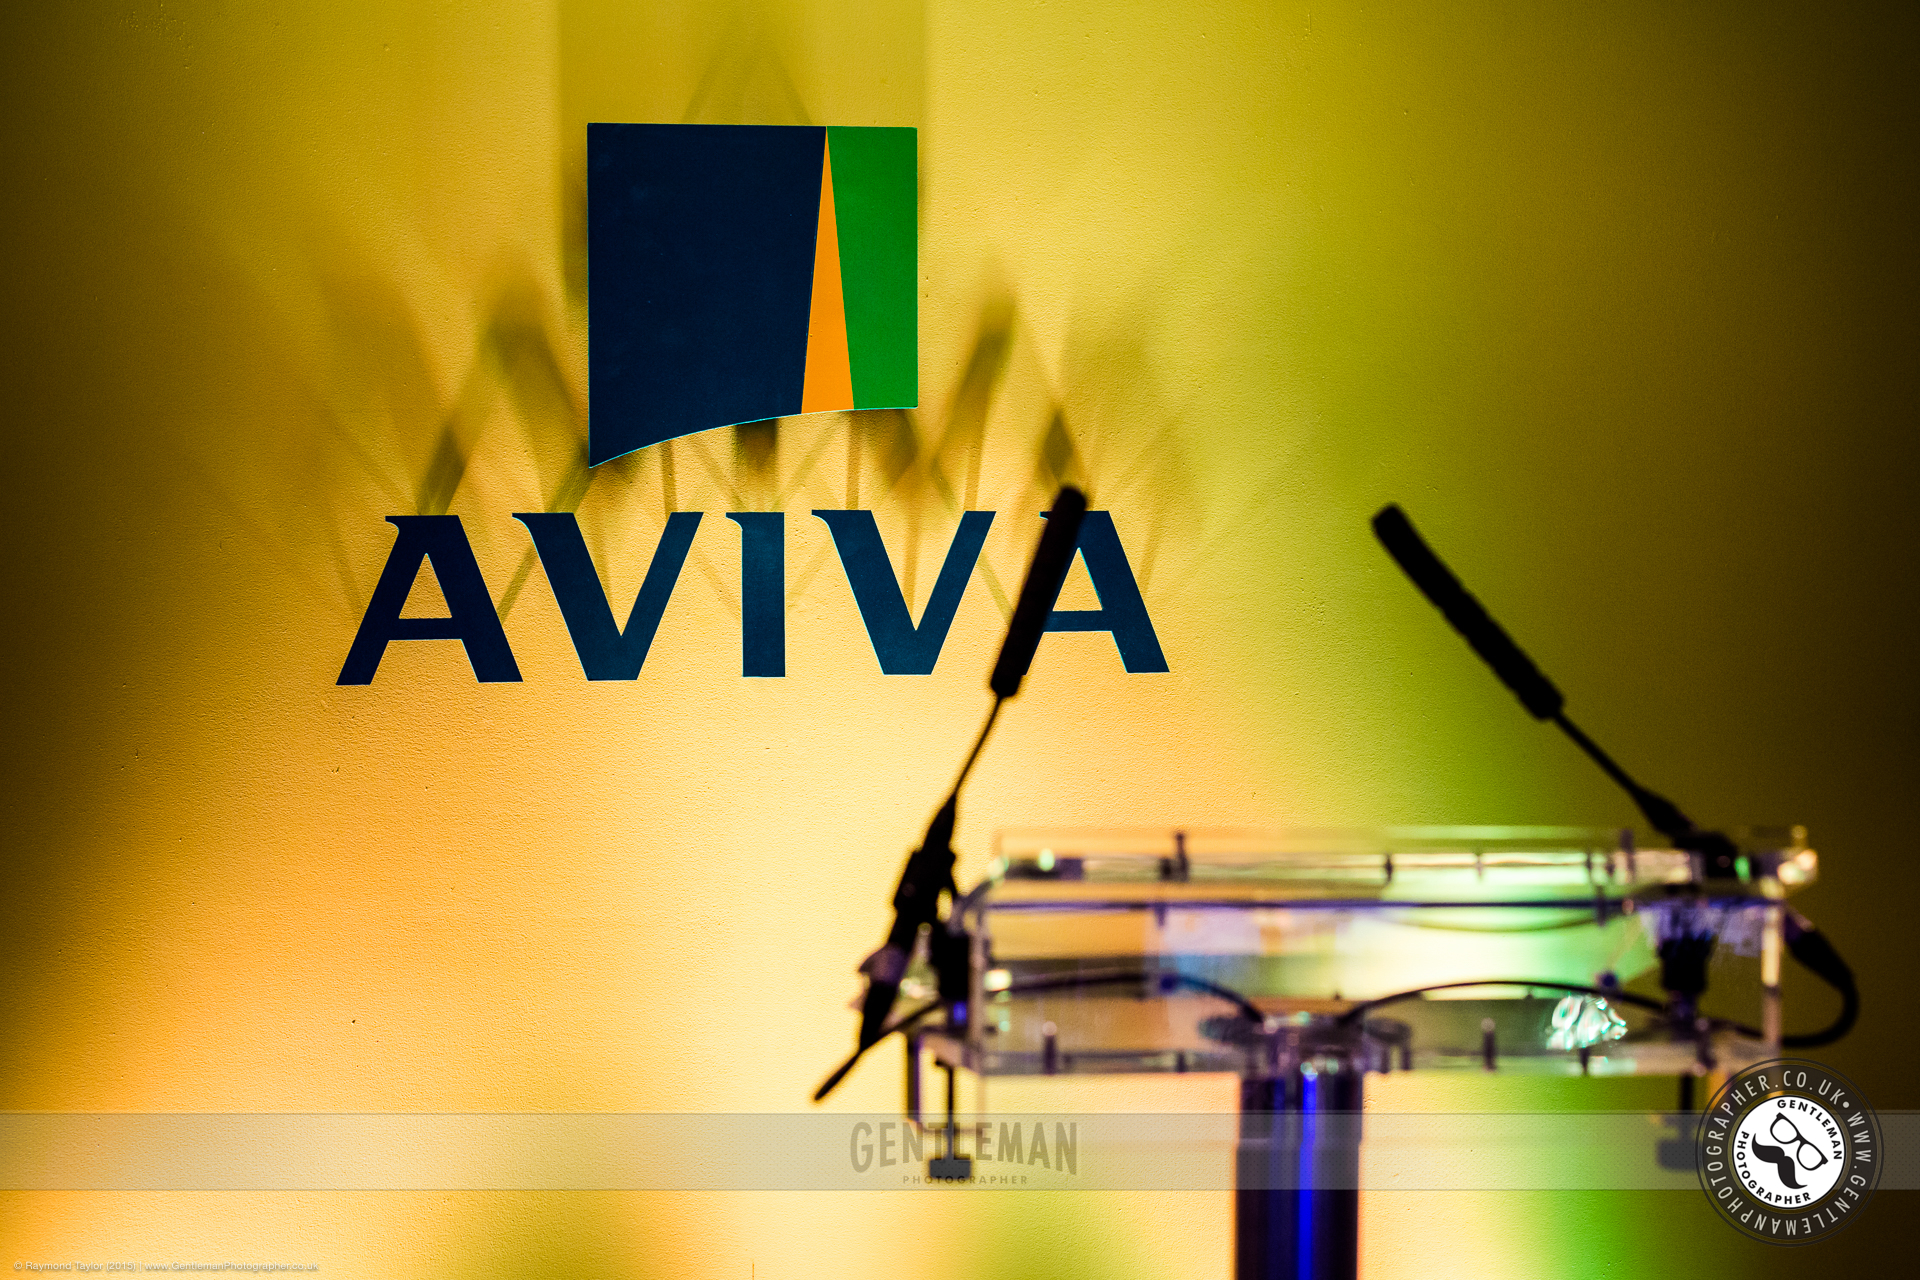 Aviva Awards Norwich – COO Excellence awards 2014